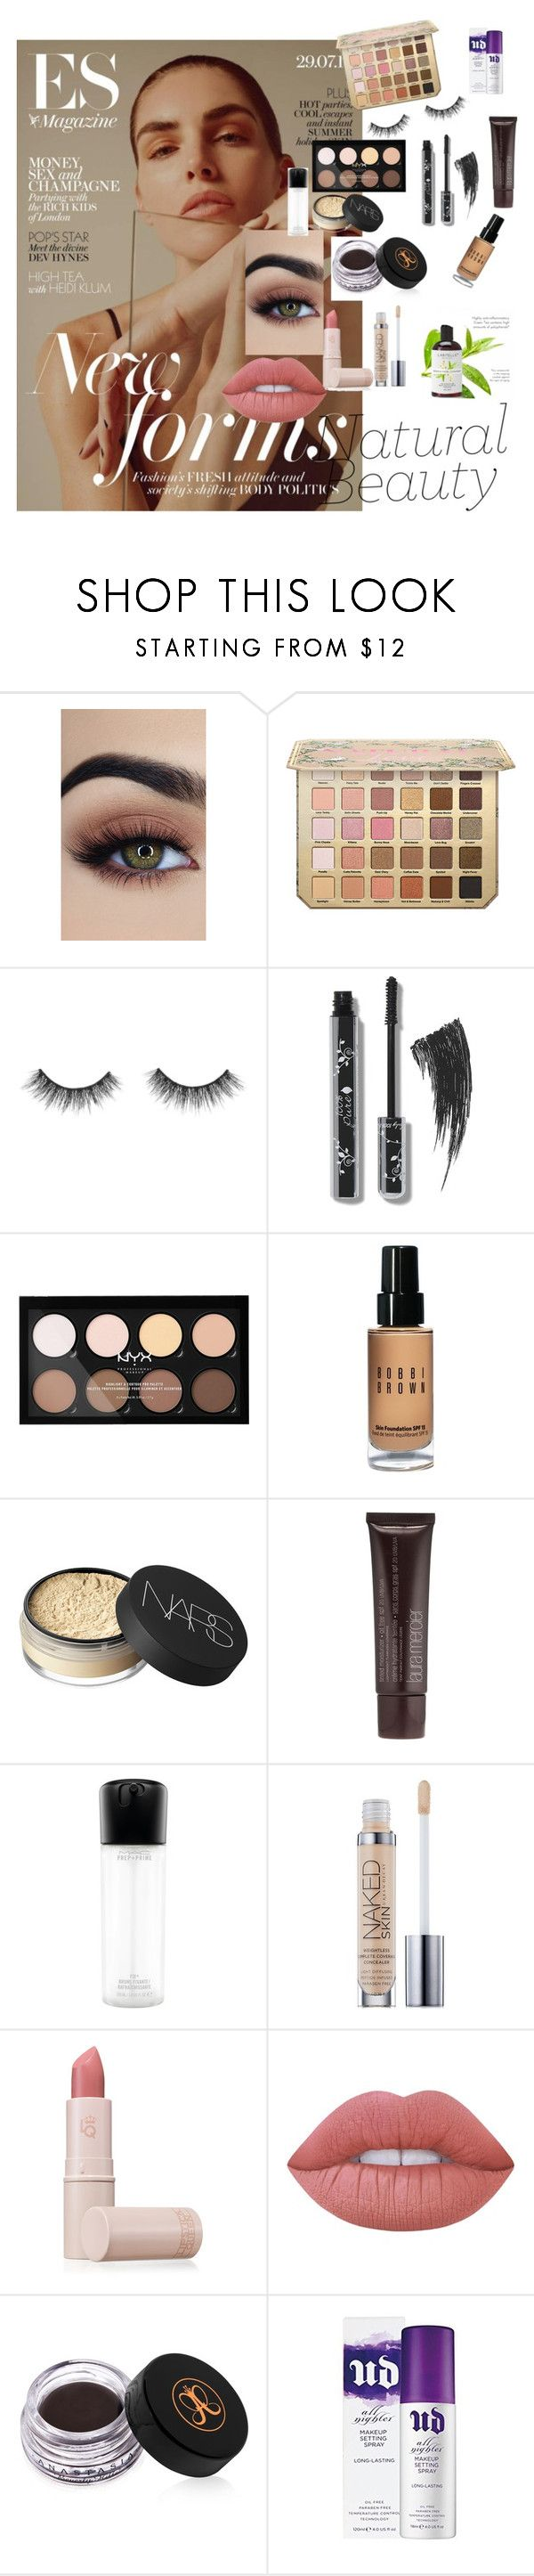 """Natural makeup look "" by xenaxoxox ❤ liked on Polyvore featuring beauty, NYX, Bobbi Brown Cosmetics, NARS Cosmetics, Laura Mercier, MAC Cosmetics, Urban Decay, Lipstick Queen, Lime Crime and Anastasia Beverly Hills"